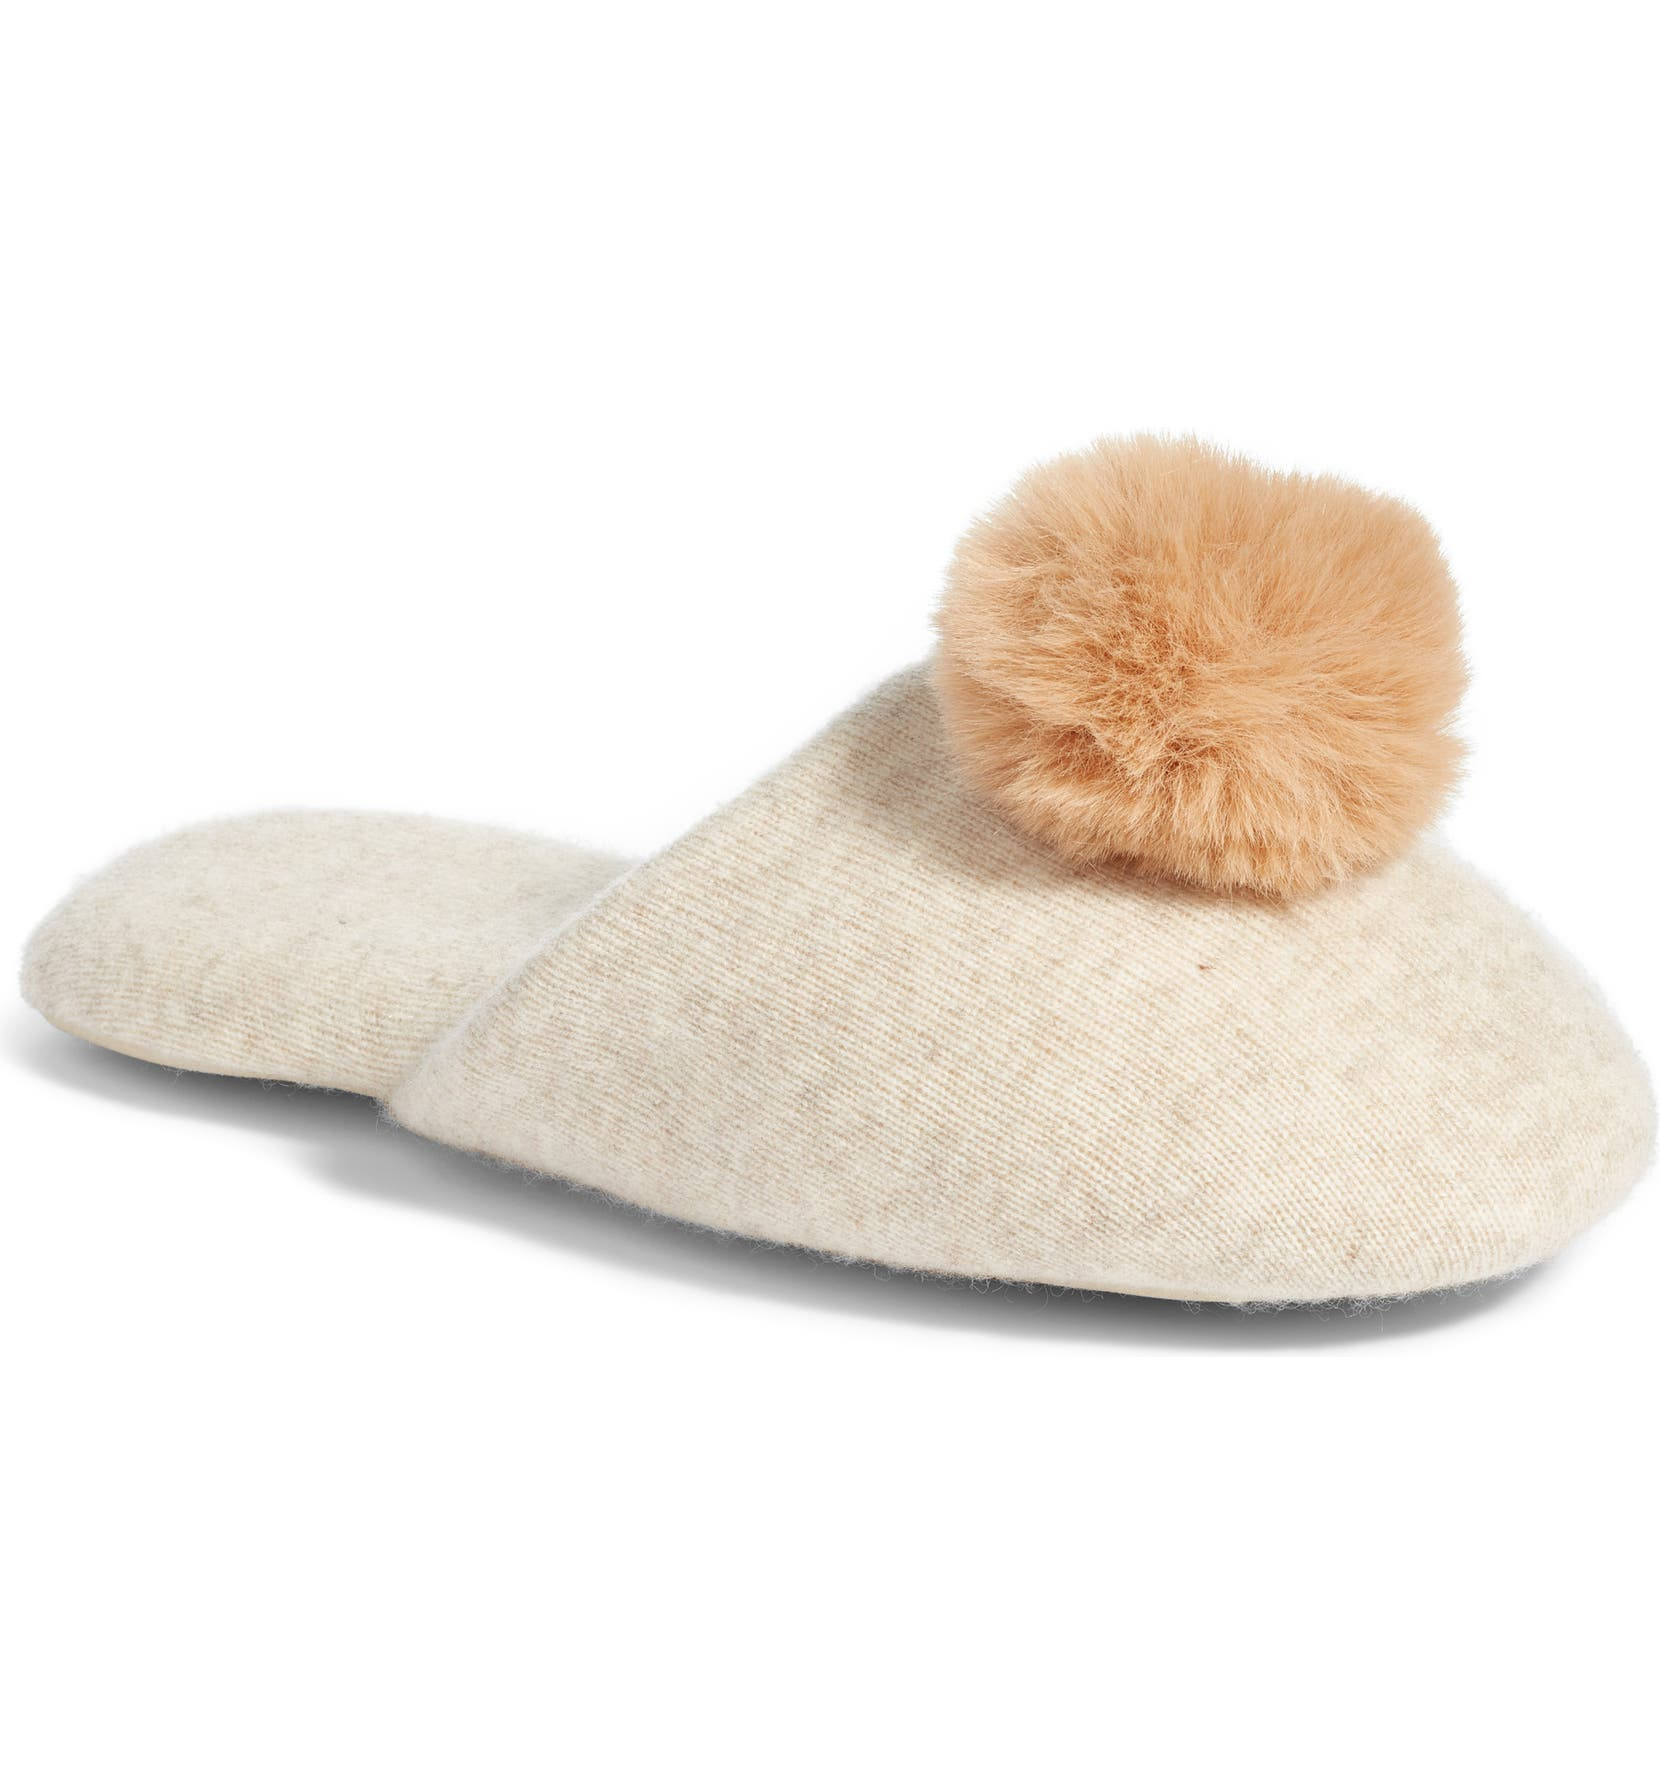 3a6c5d777 Nordstrom Wool & Cashmere Slippers with Faux Fur Pompom | Nordstrom